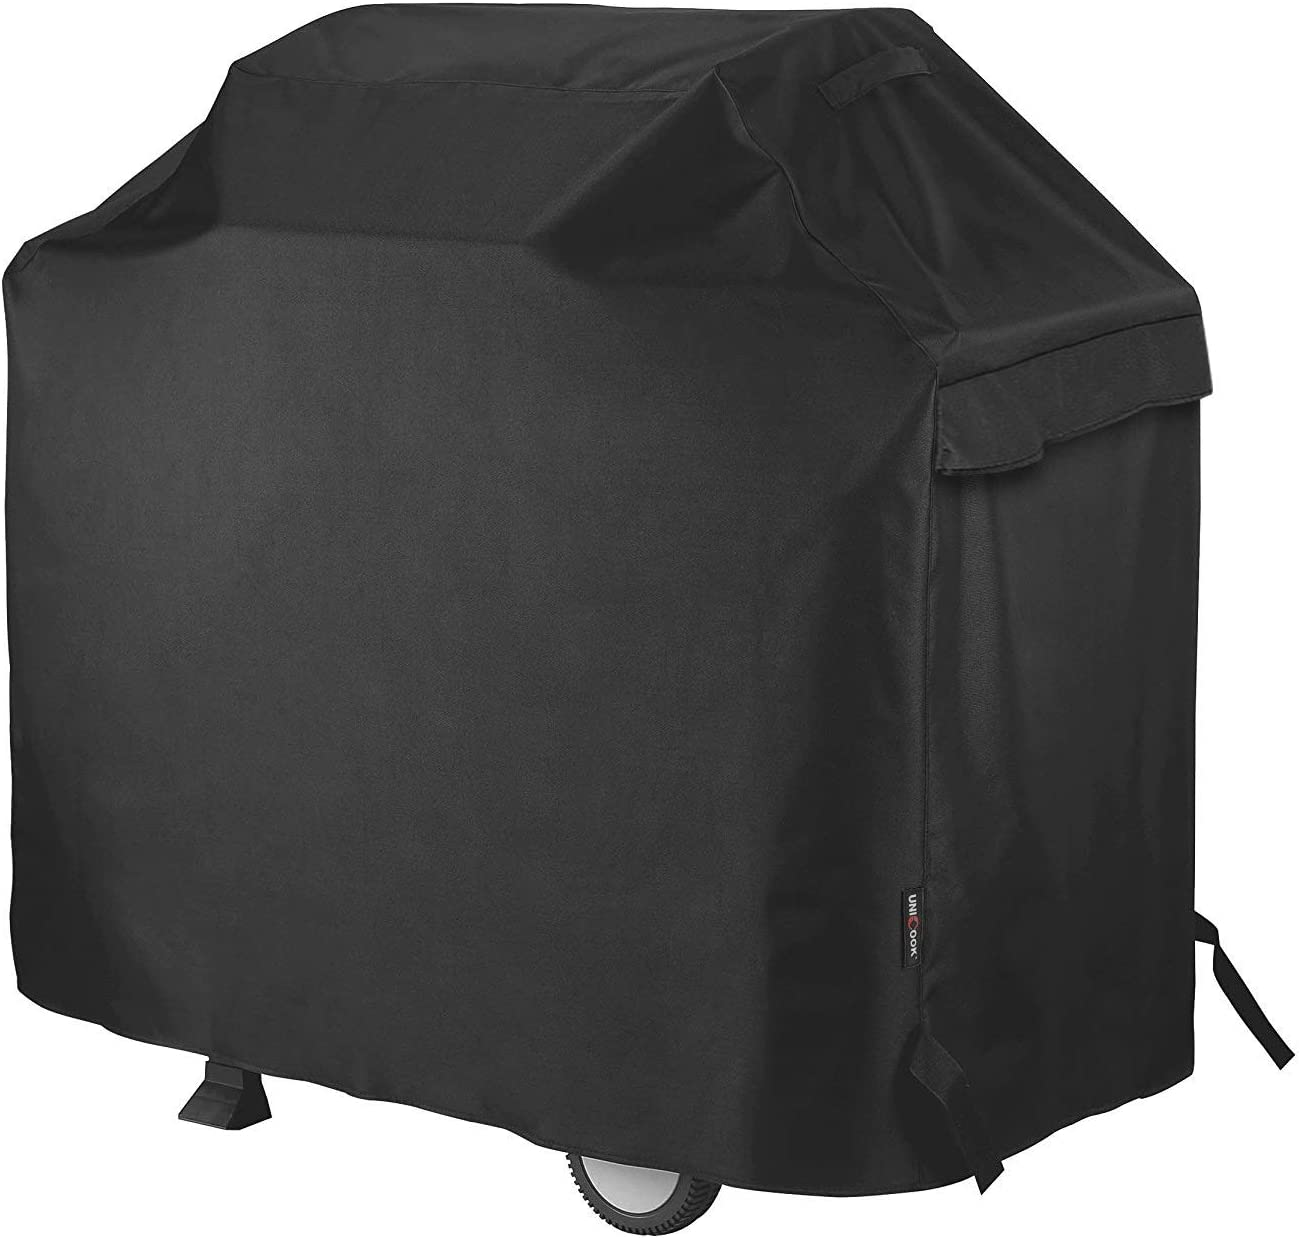 Unicook Heavy Duty Waterproof Barbecue Gas Grill Cover 50 Inch Bbq Cover Special Fade And Uv Resistant Material Fits Grills Of Weber Char Broil Nexgrill Brinkmann And More Amazon Ca Patio Lawn Garden